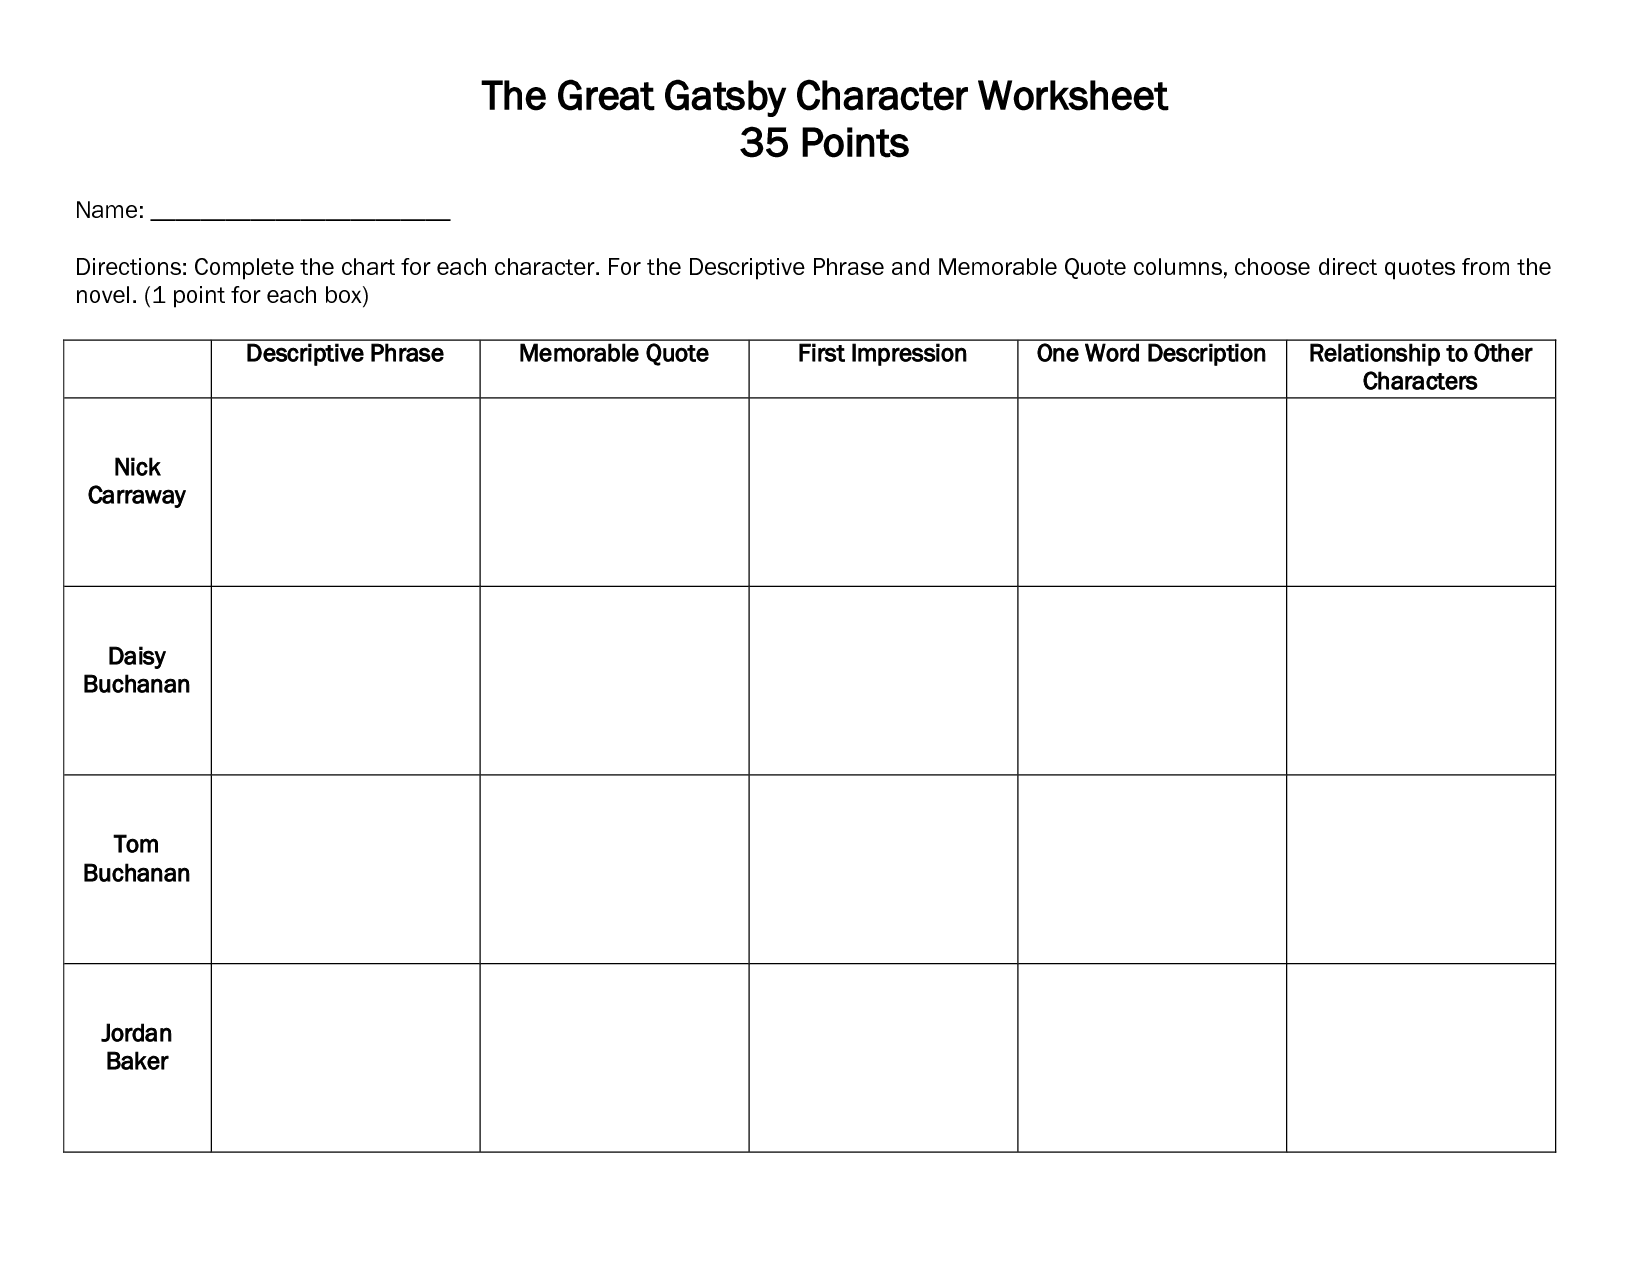 Worksheets For Great Gatsby  The Great Gatsby Character Worksheet  Worksheets For Great Gatsby  The Great Gatsby Character Worksheet   Points Name Directions